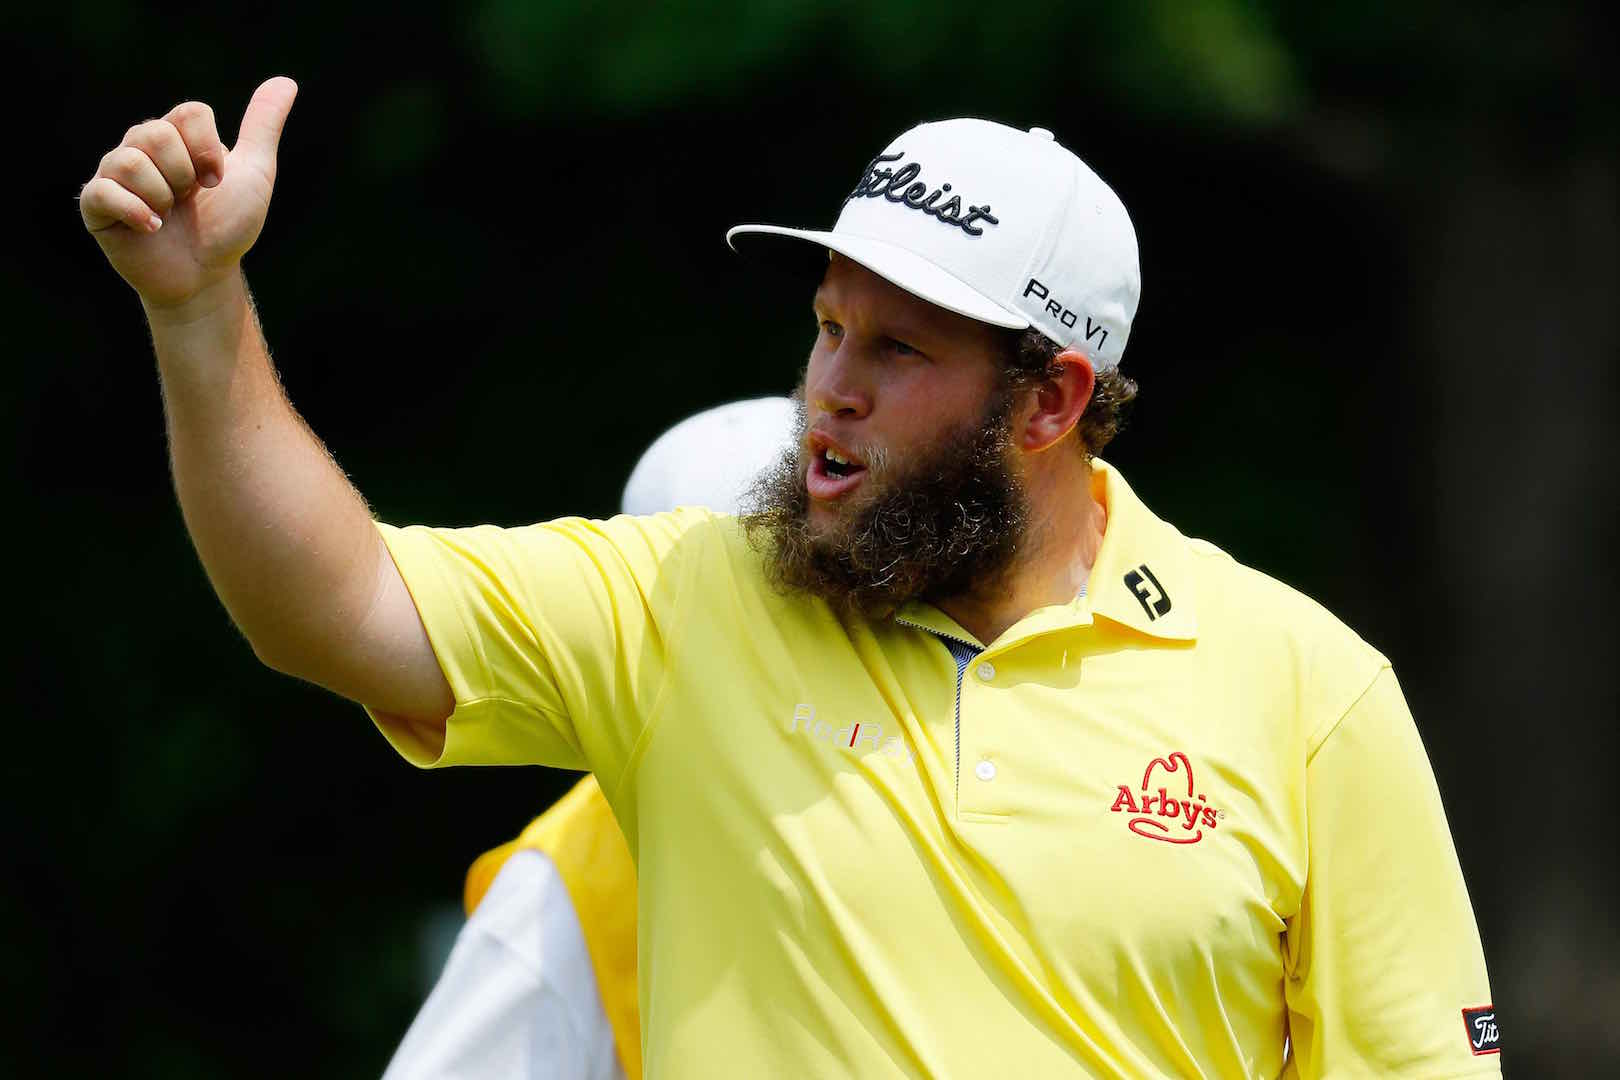 Beef plays down Ryder Cup chances